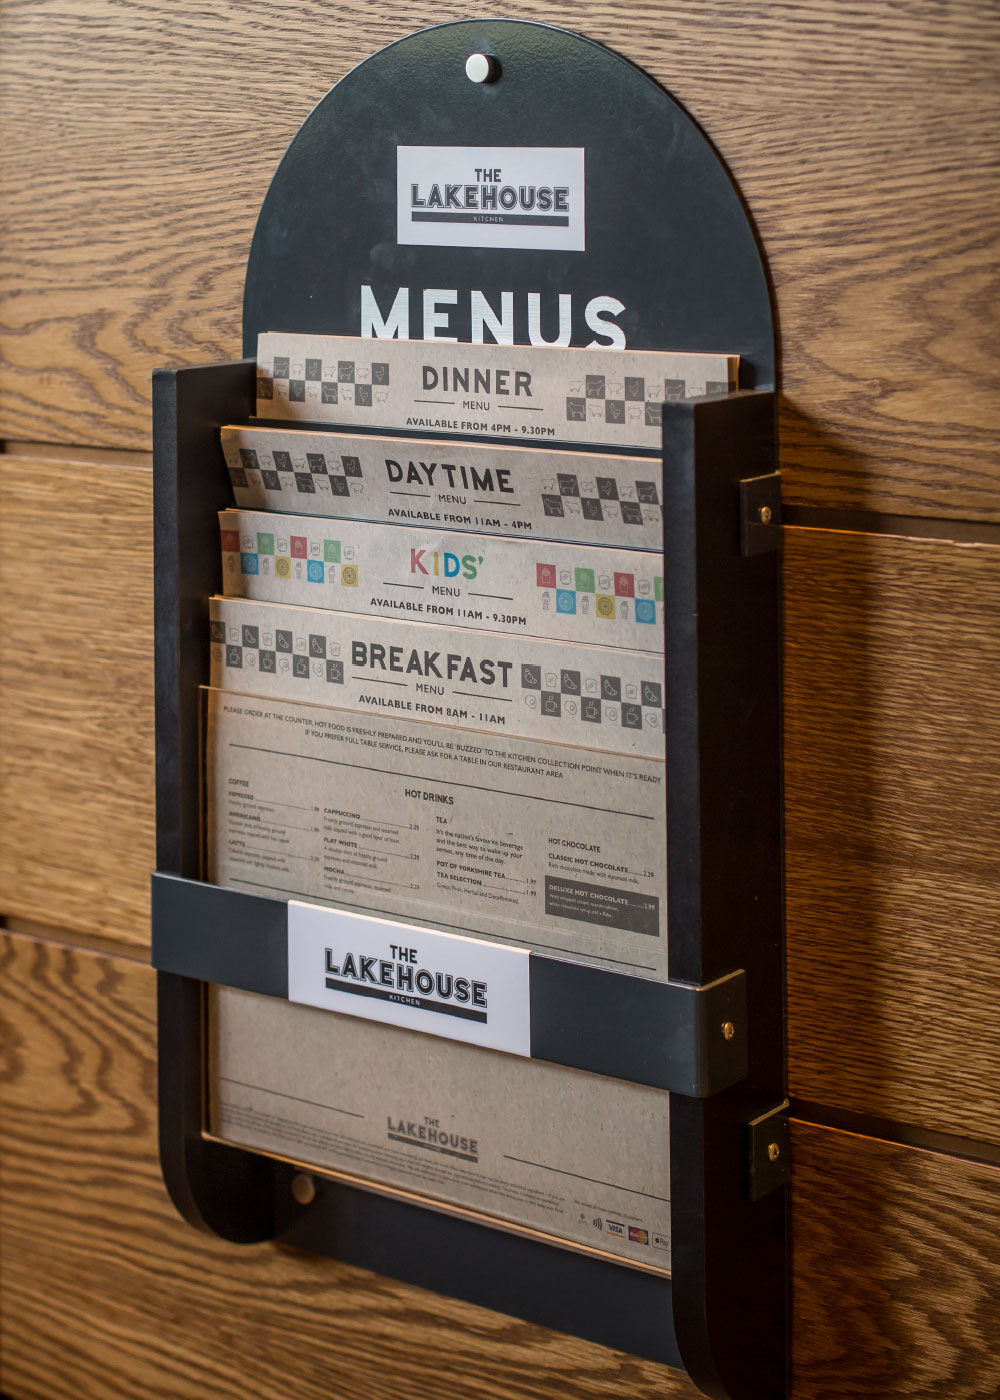 Menus and holder in The Lakehouse